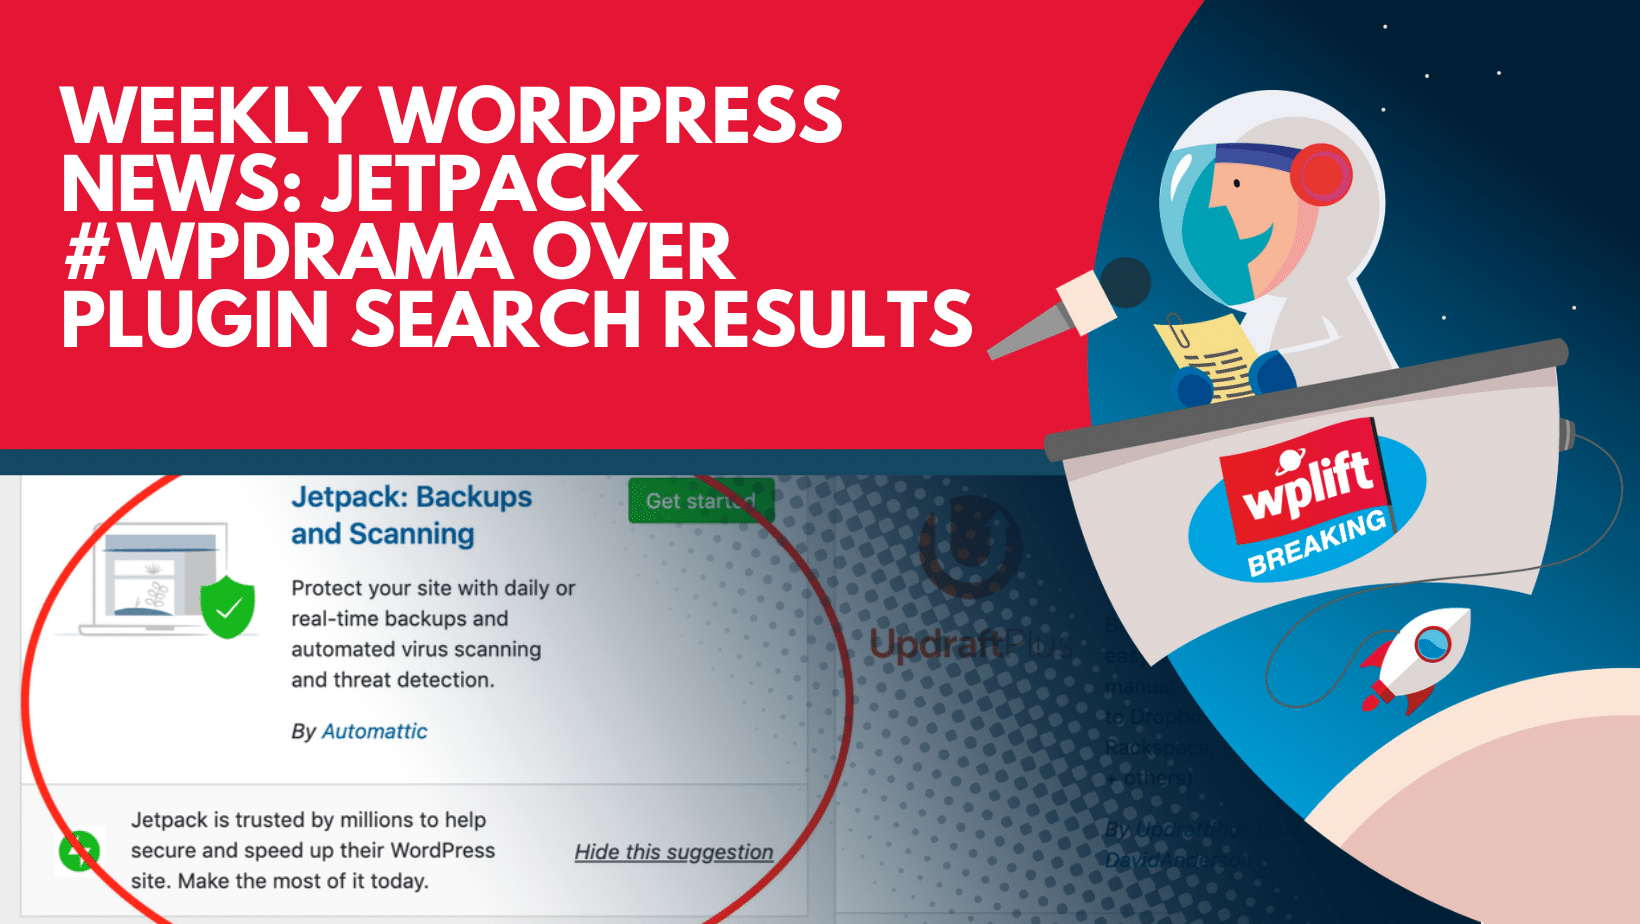 Jetpack #wpdrama Over Plugin Search Results